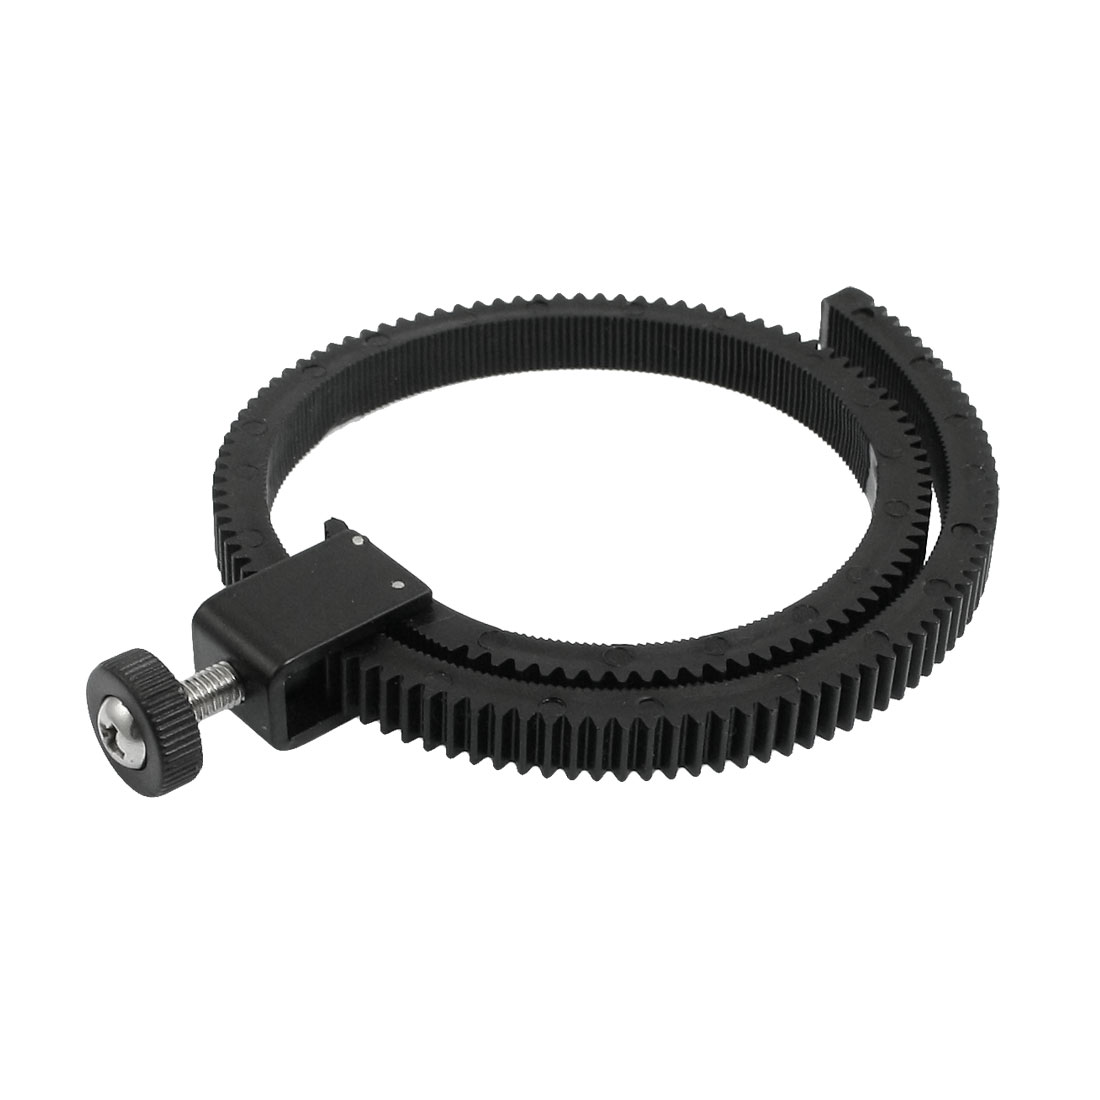 Camera Photograph Flexible DSLR Lens Follow Focus Gear Ring Belt Black